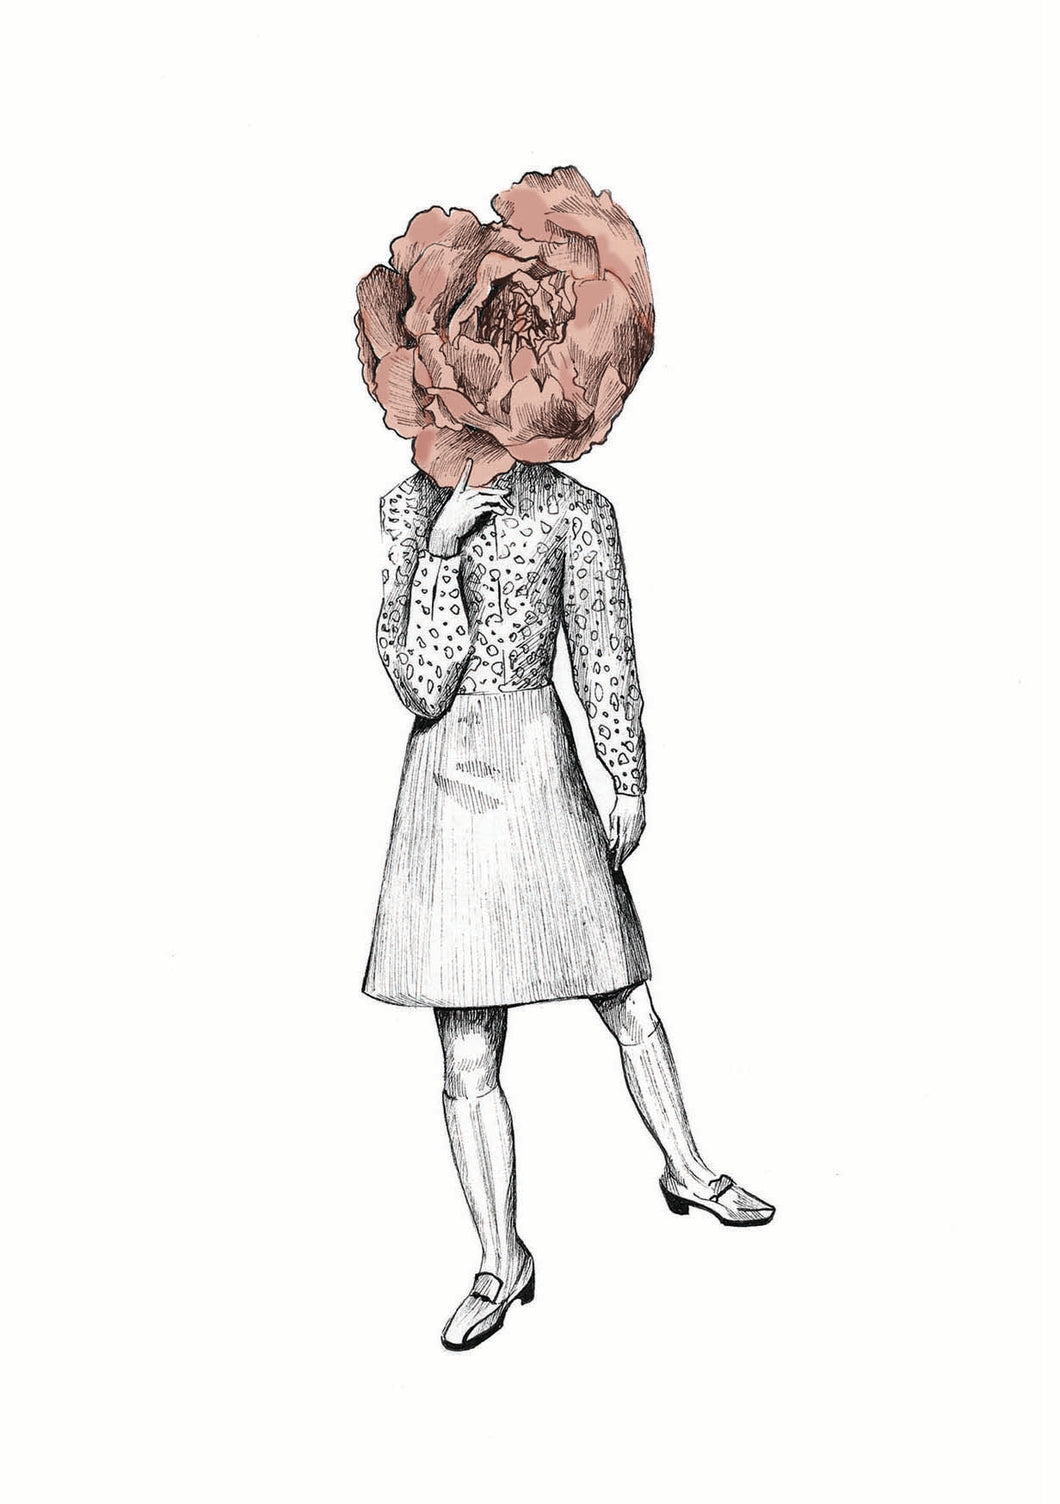 Peony Fine Art Print - About Face Illustration